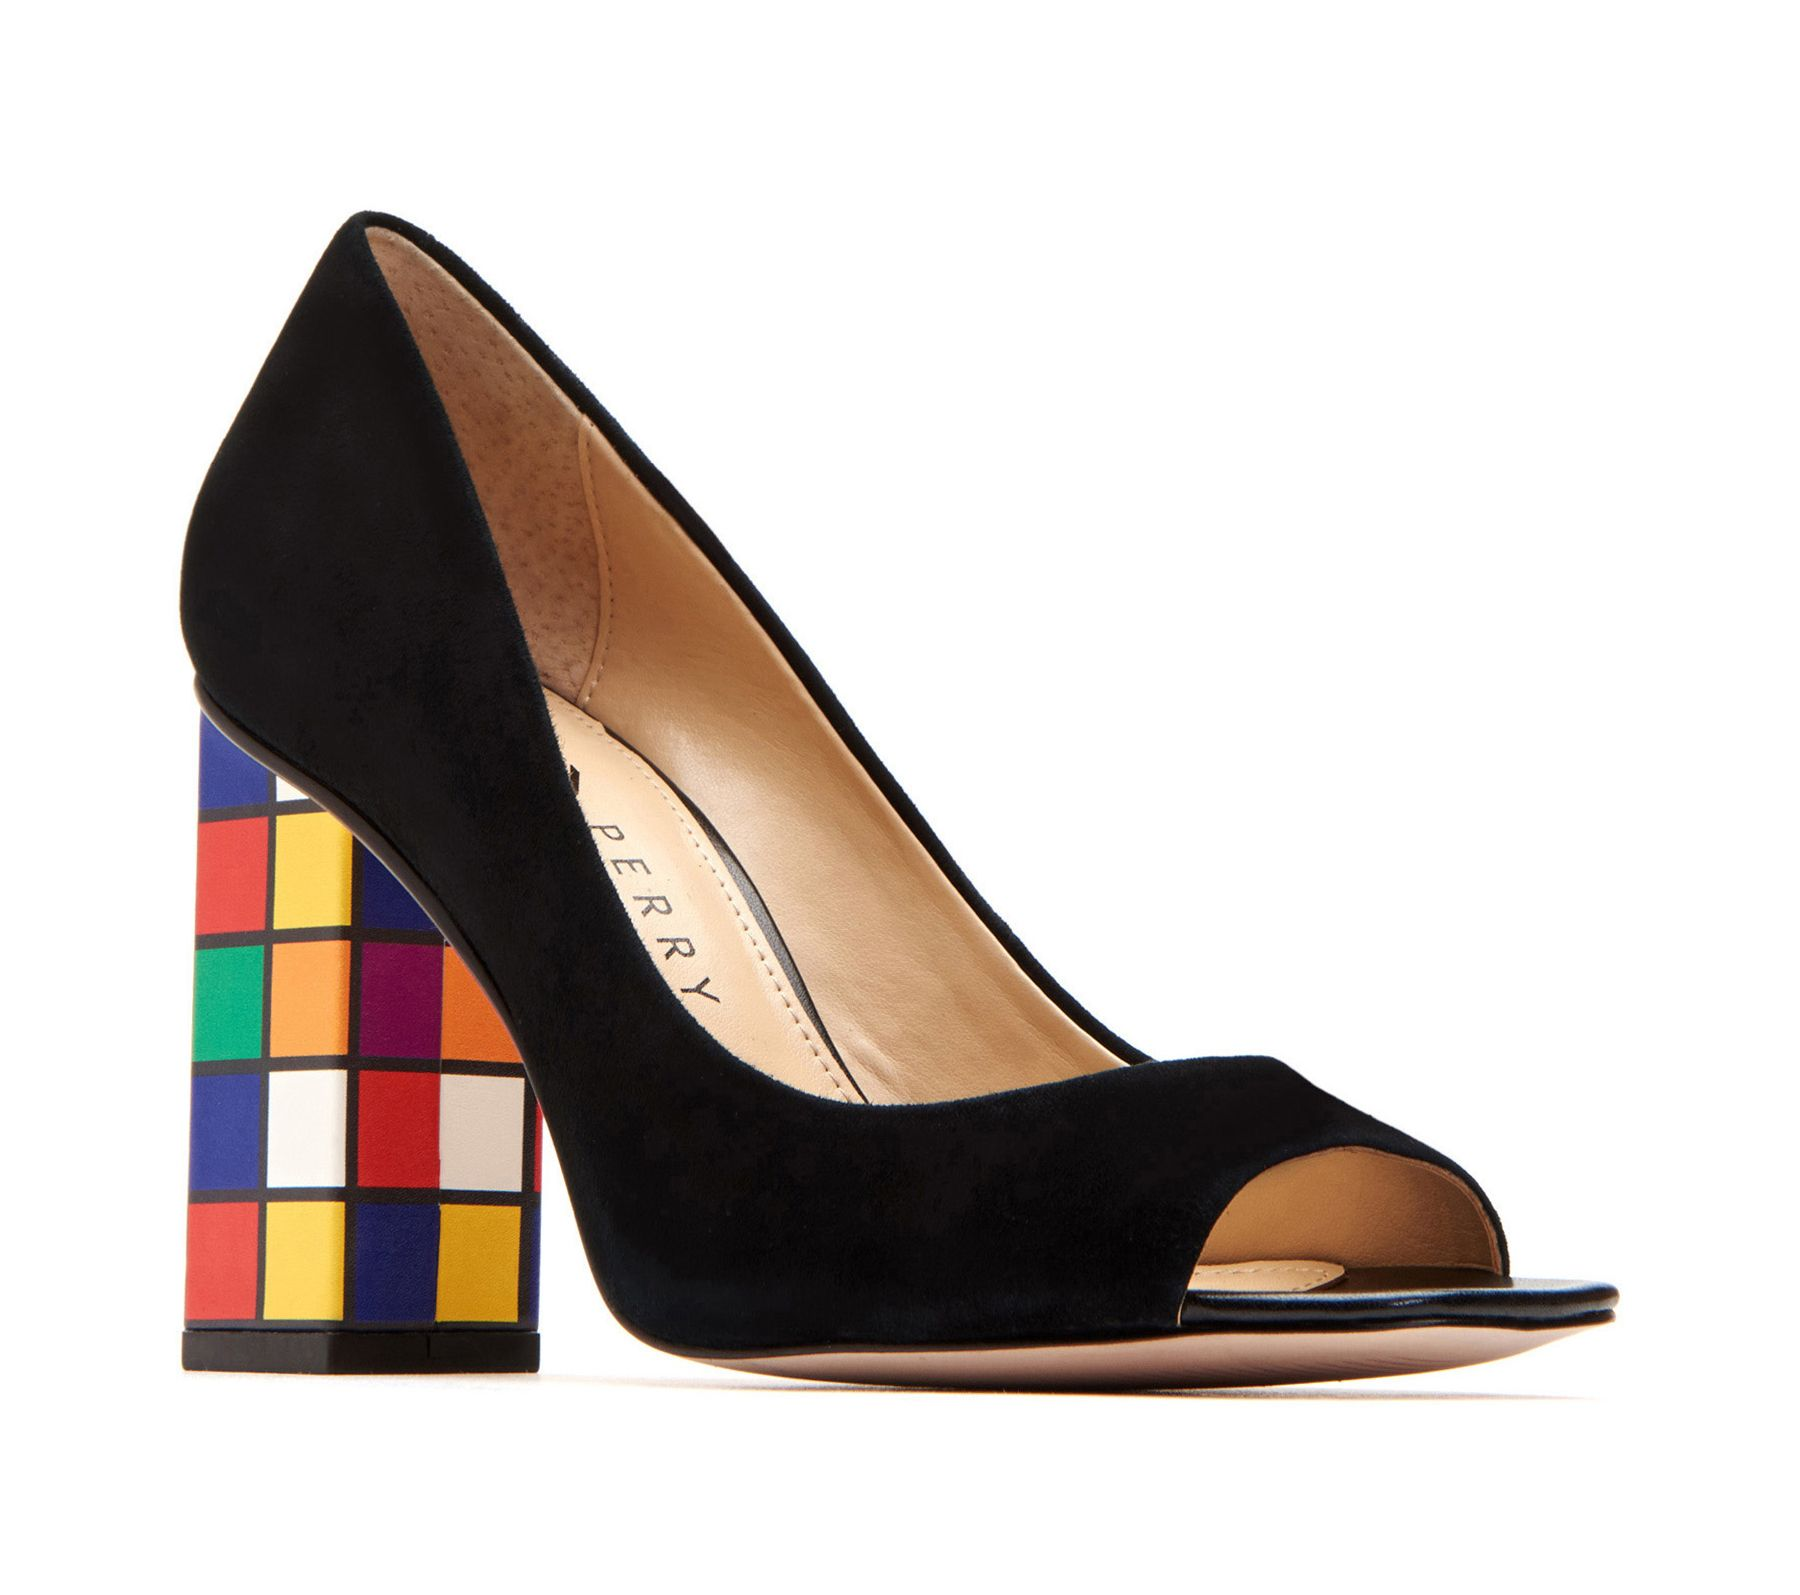 b8b54ba73d3 katy perry collections the caitlin black rubik's cube heels ...